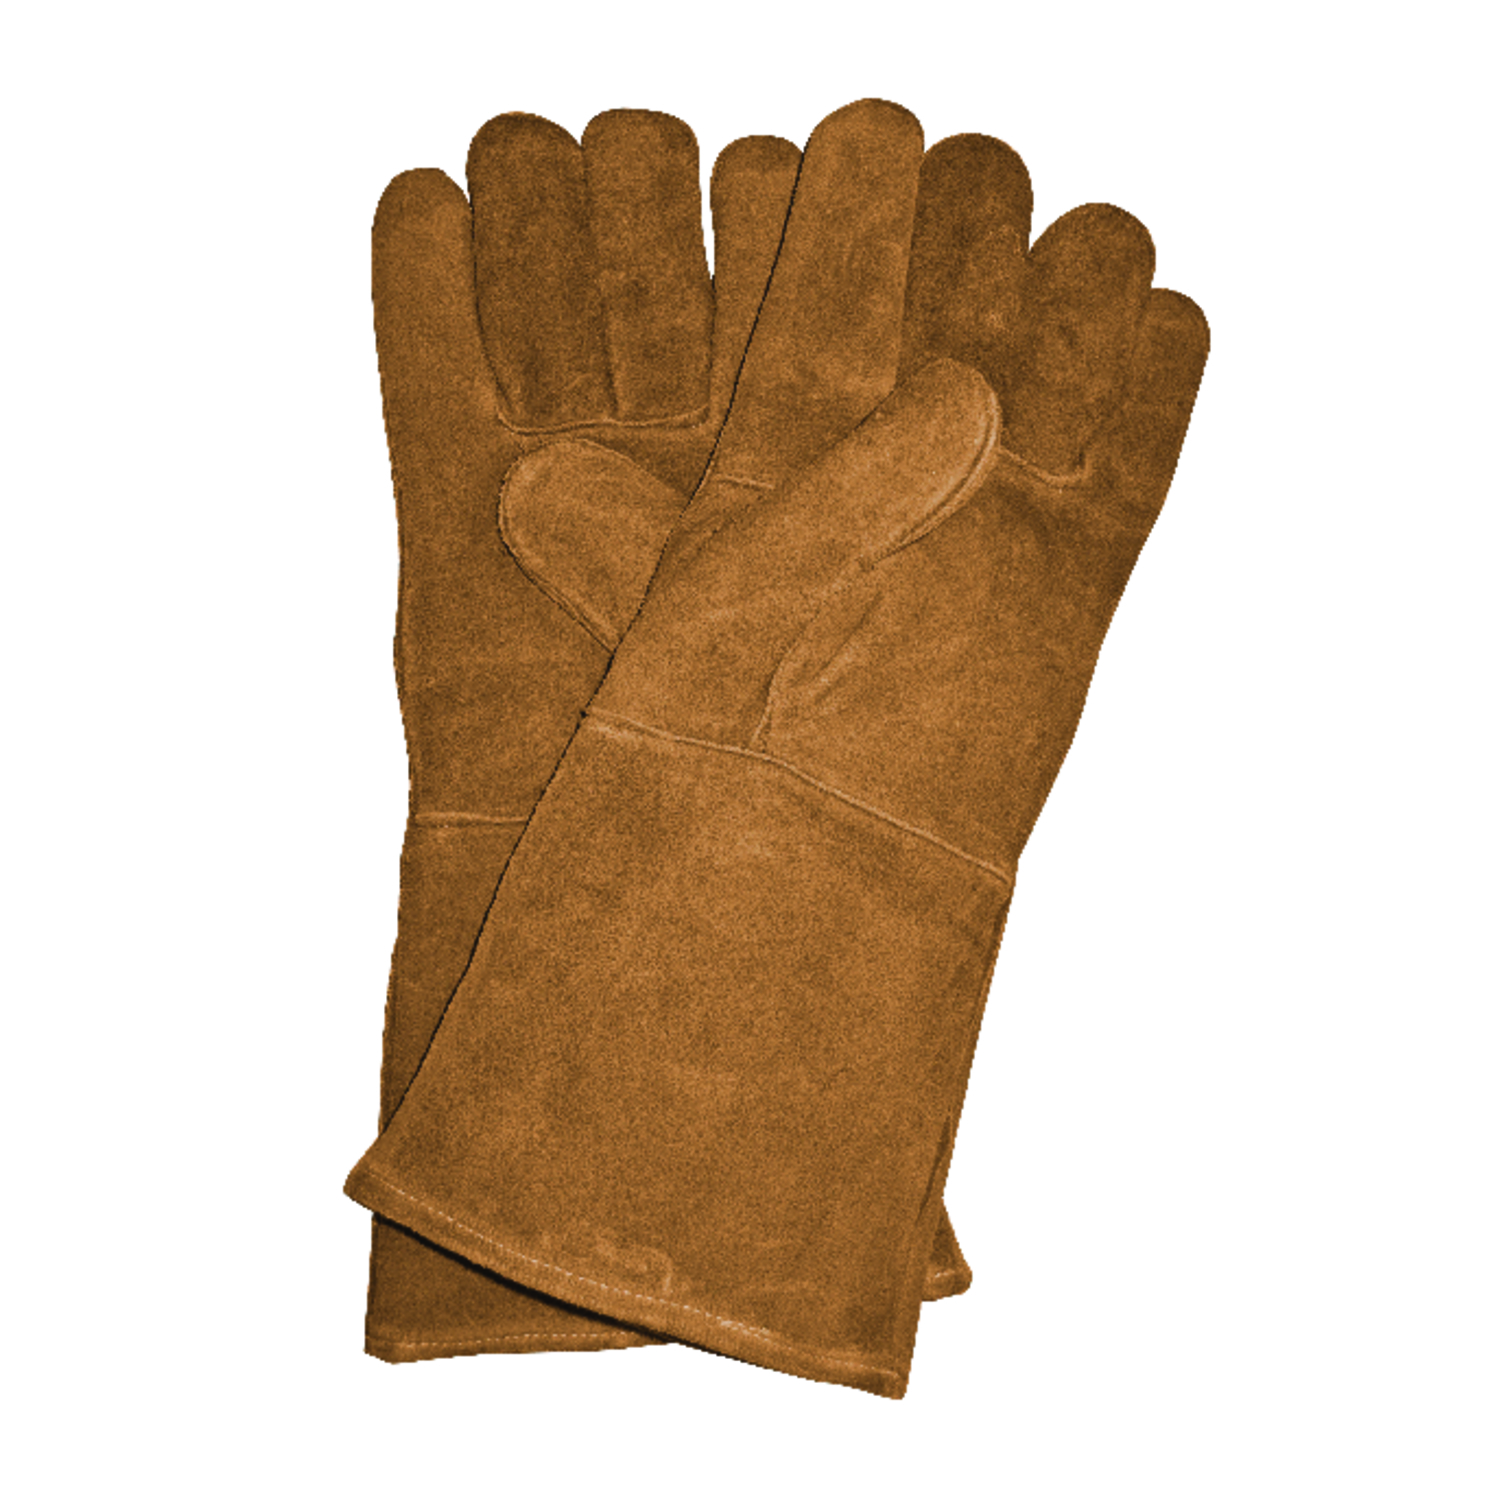 Panacea  Unisex  Indoor/Outdoor  Leather  Heavy Duty  Gloves  One Size Fits All  Brown